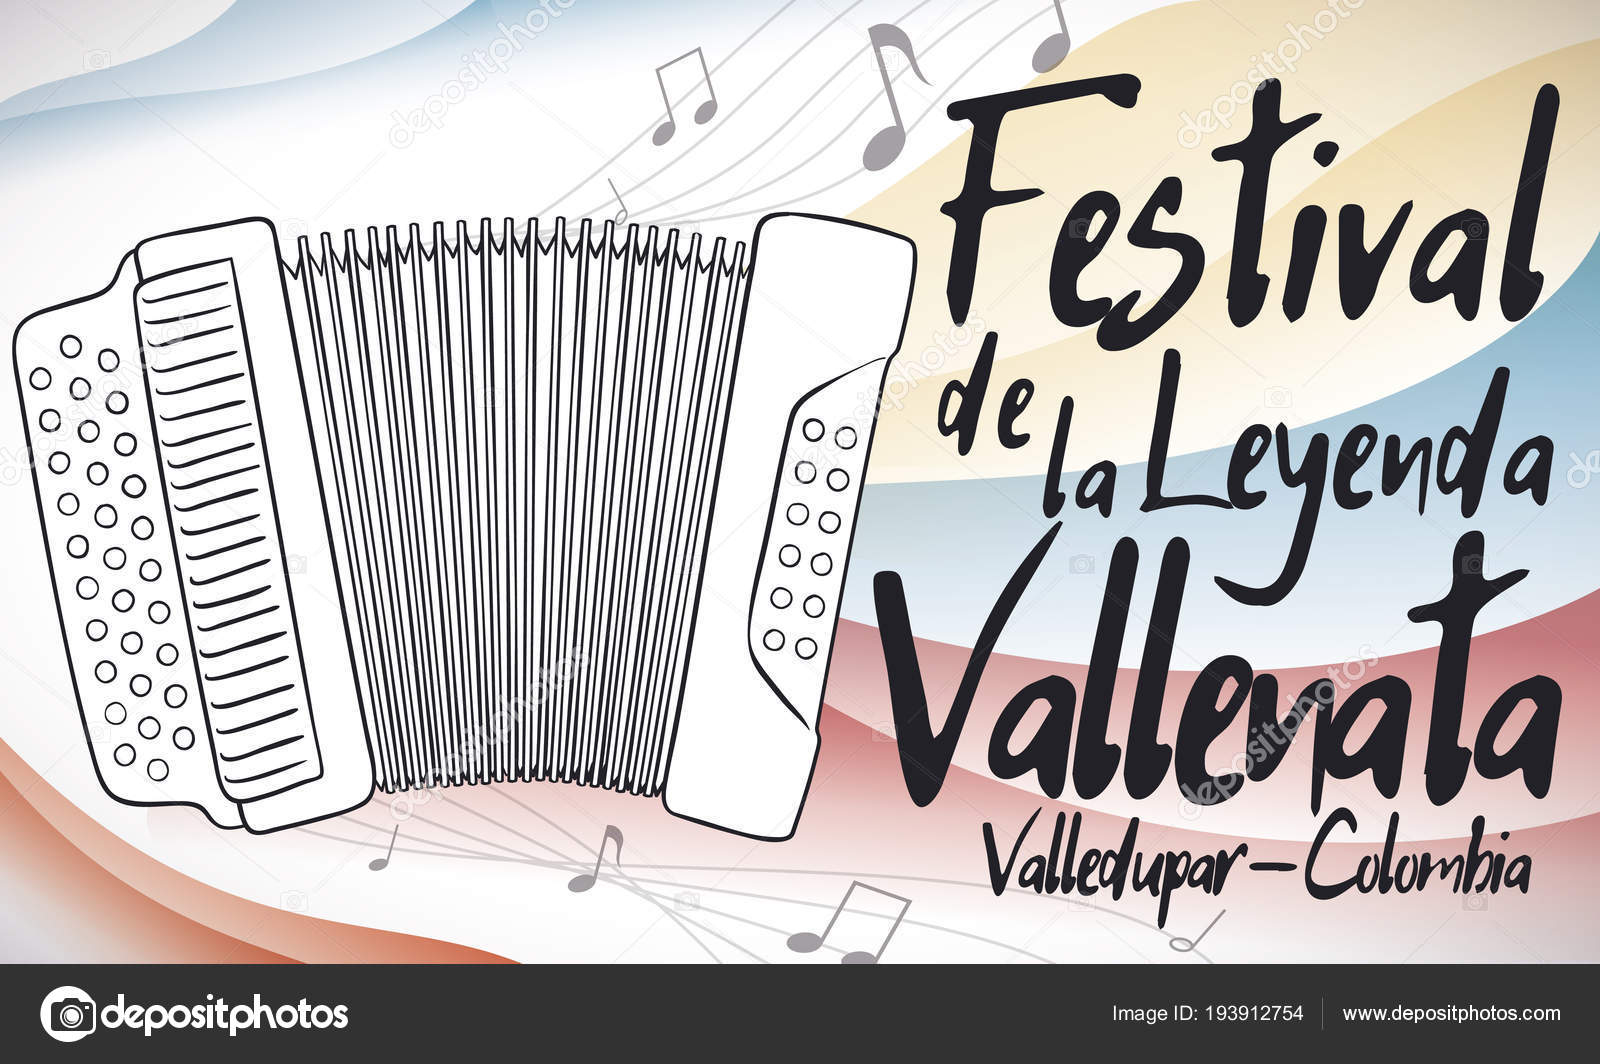 Accordion Playing Music with Colombian Colors for Vallenato Legend